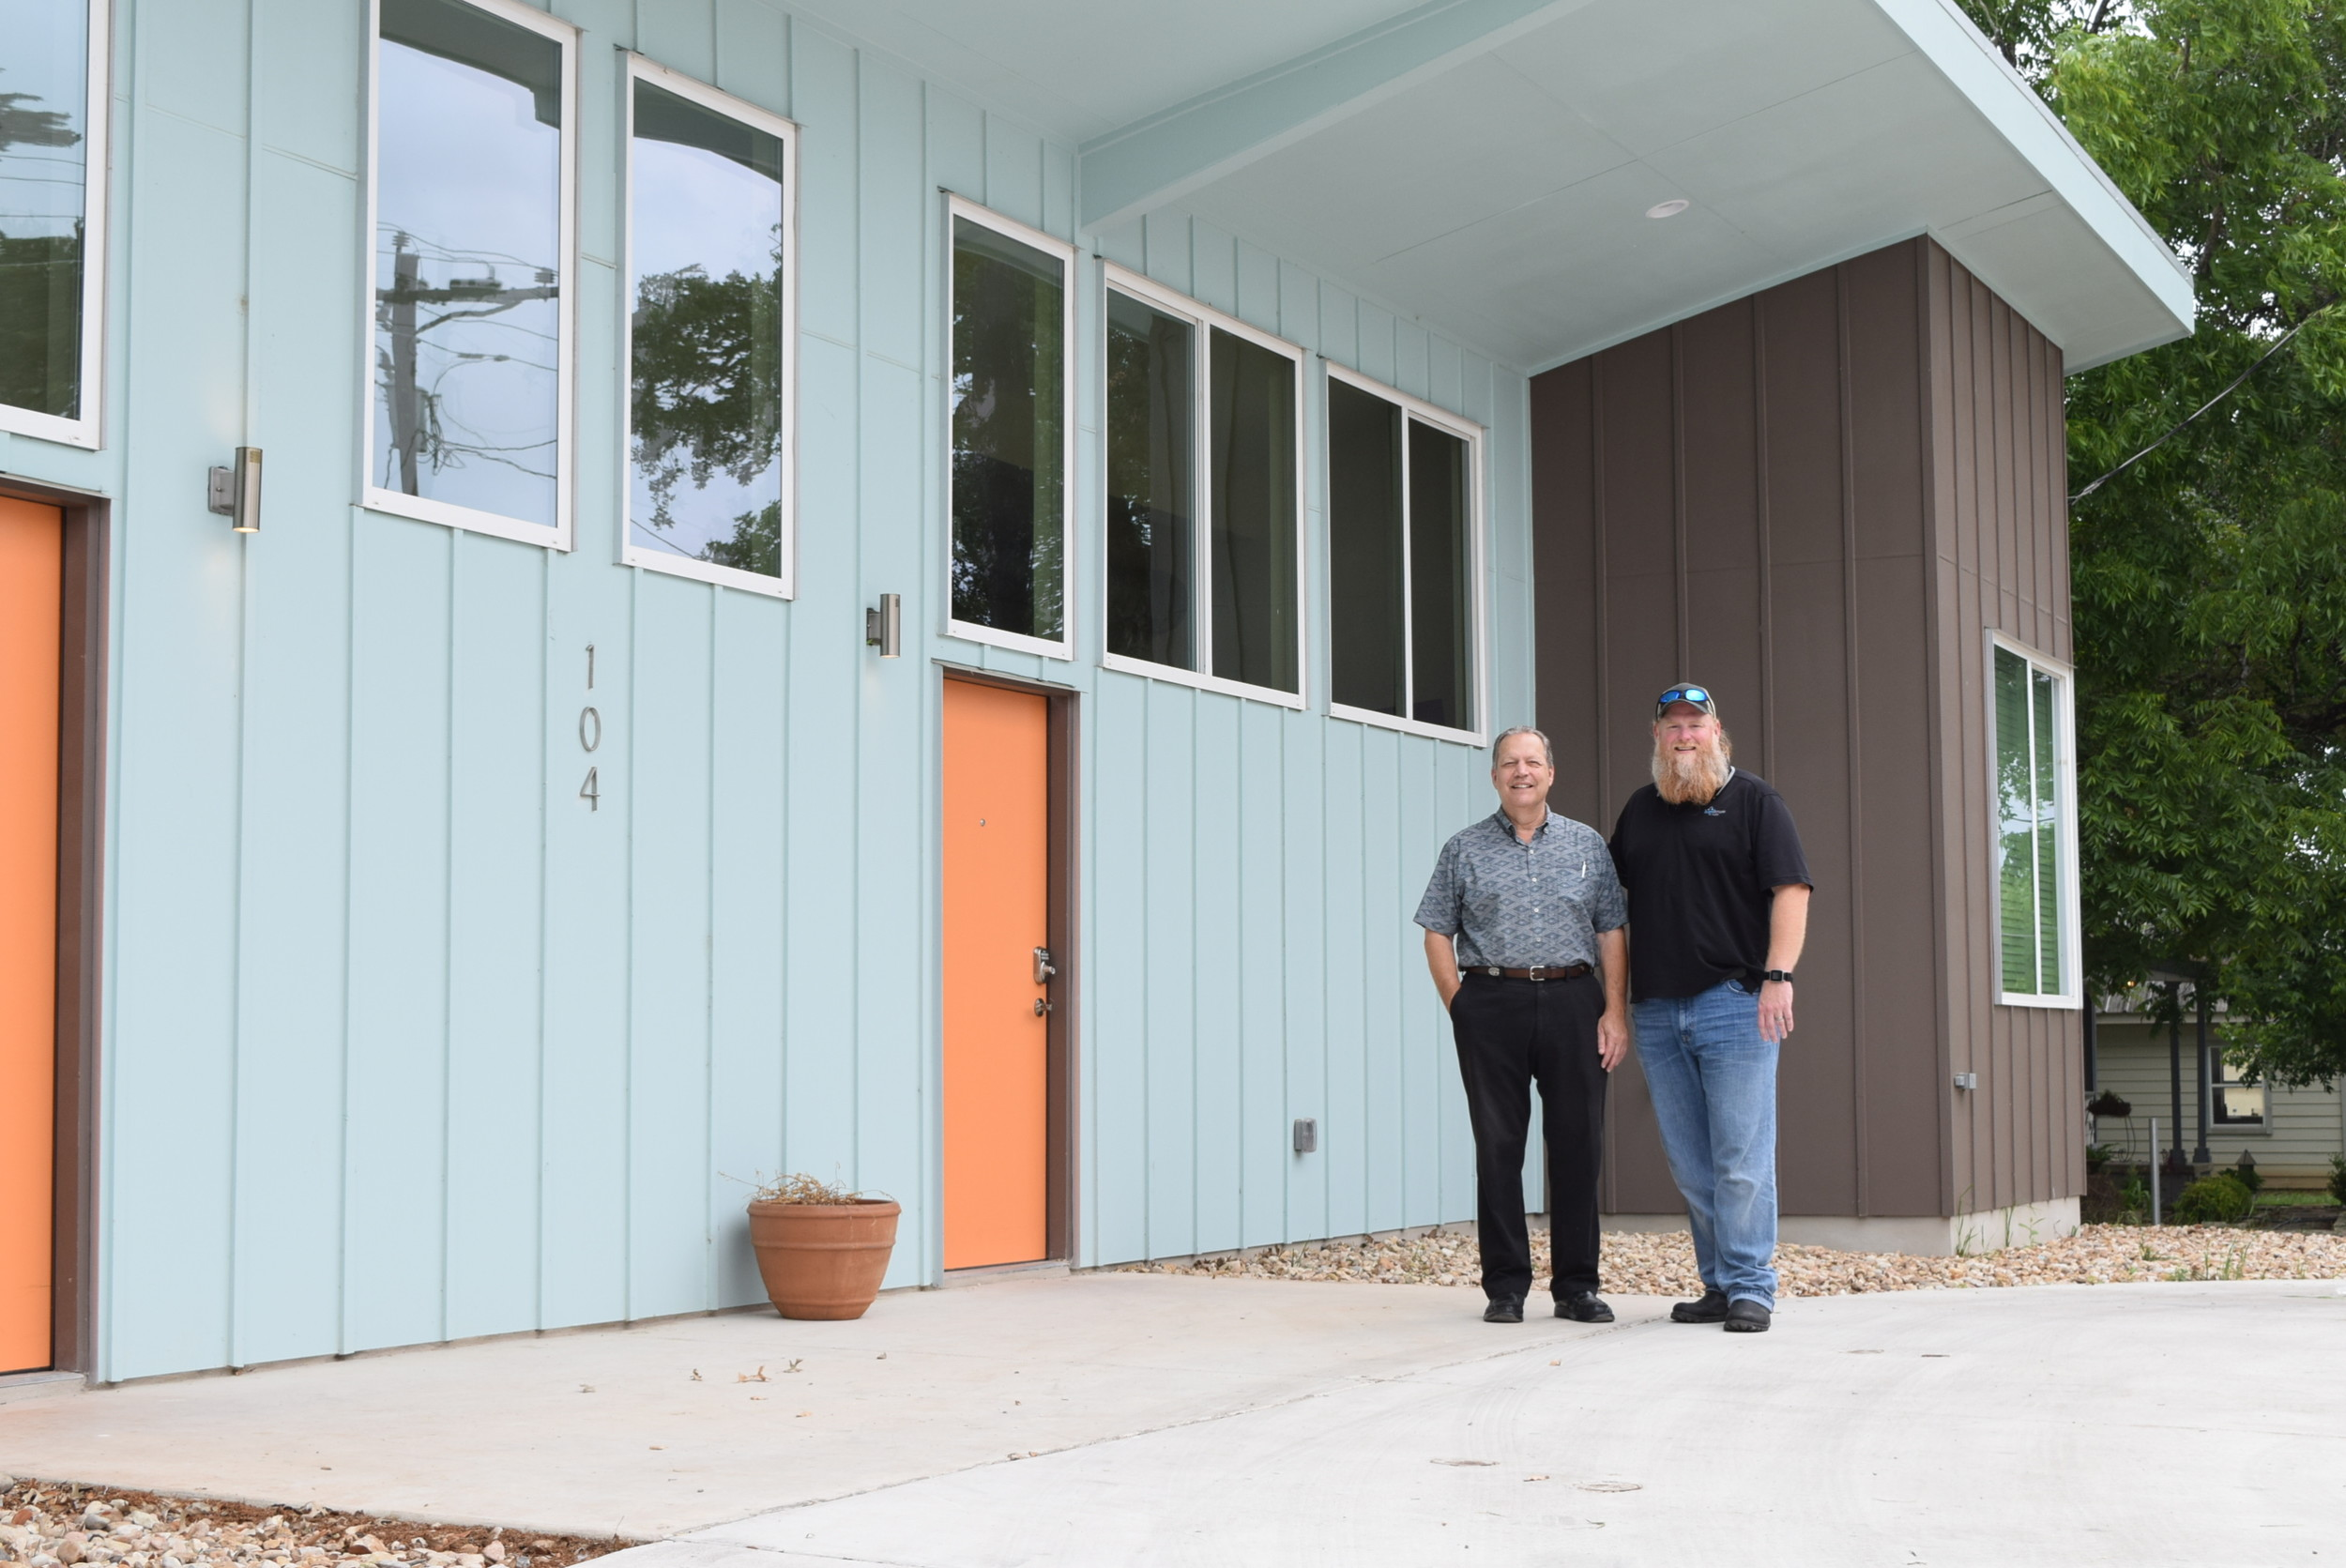 Development director, Erland Schulze (left), and executive director, David Gould, stand outside the Hope House duplex on Young Street in Liberty Hill.